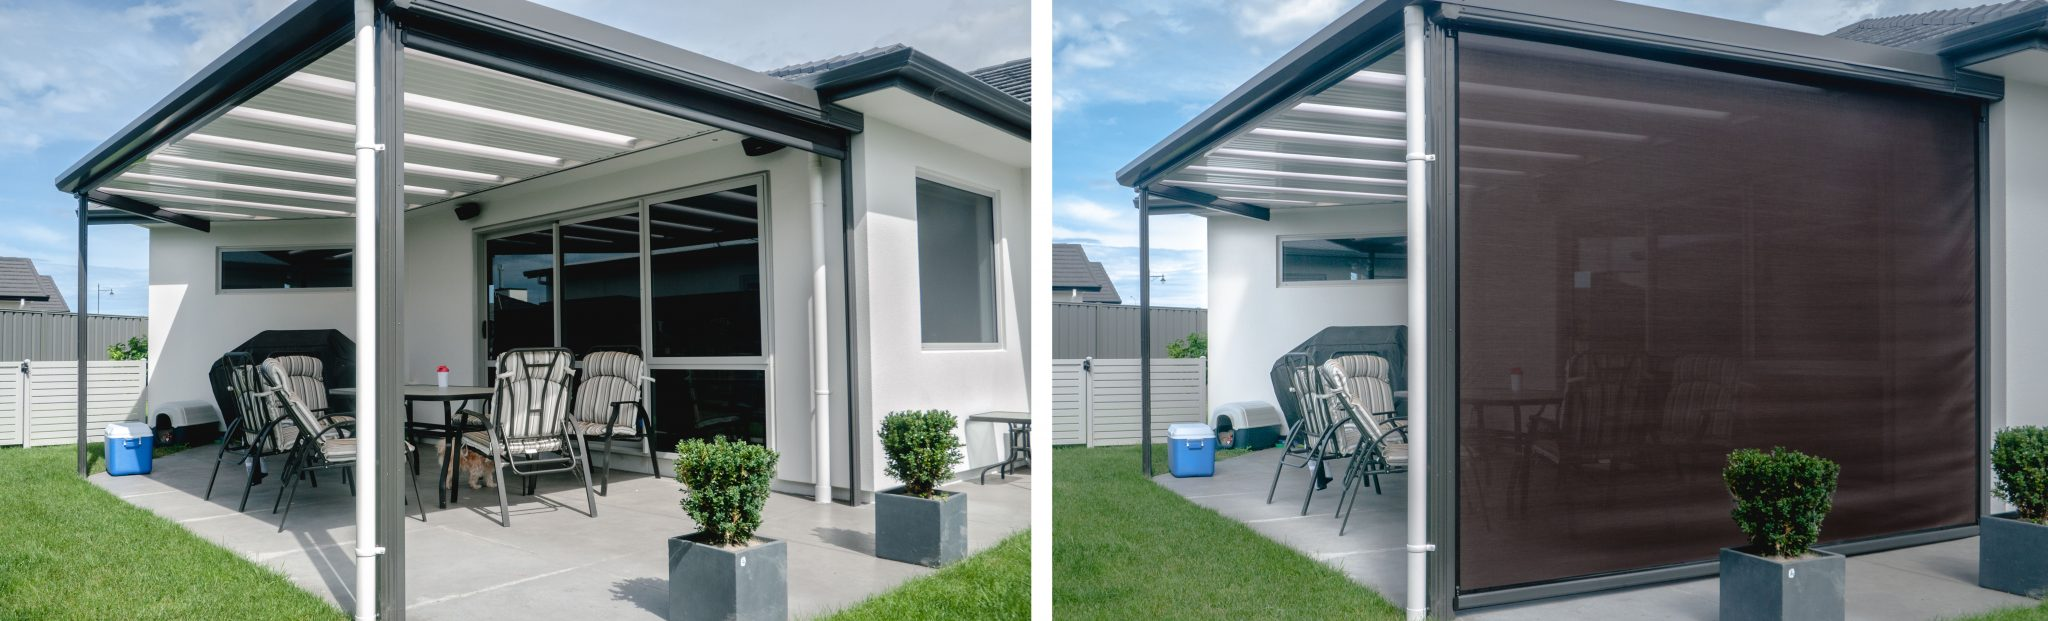 a side by side comparison of a patio roof with its blind up vs down